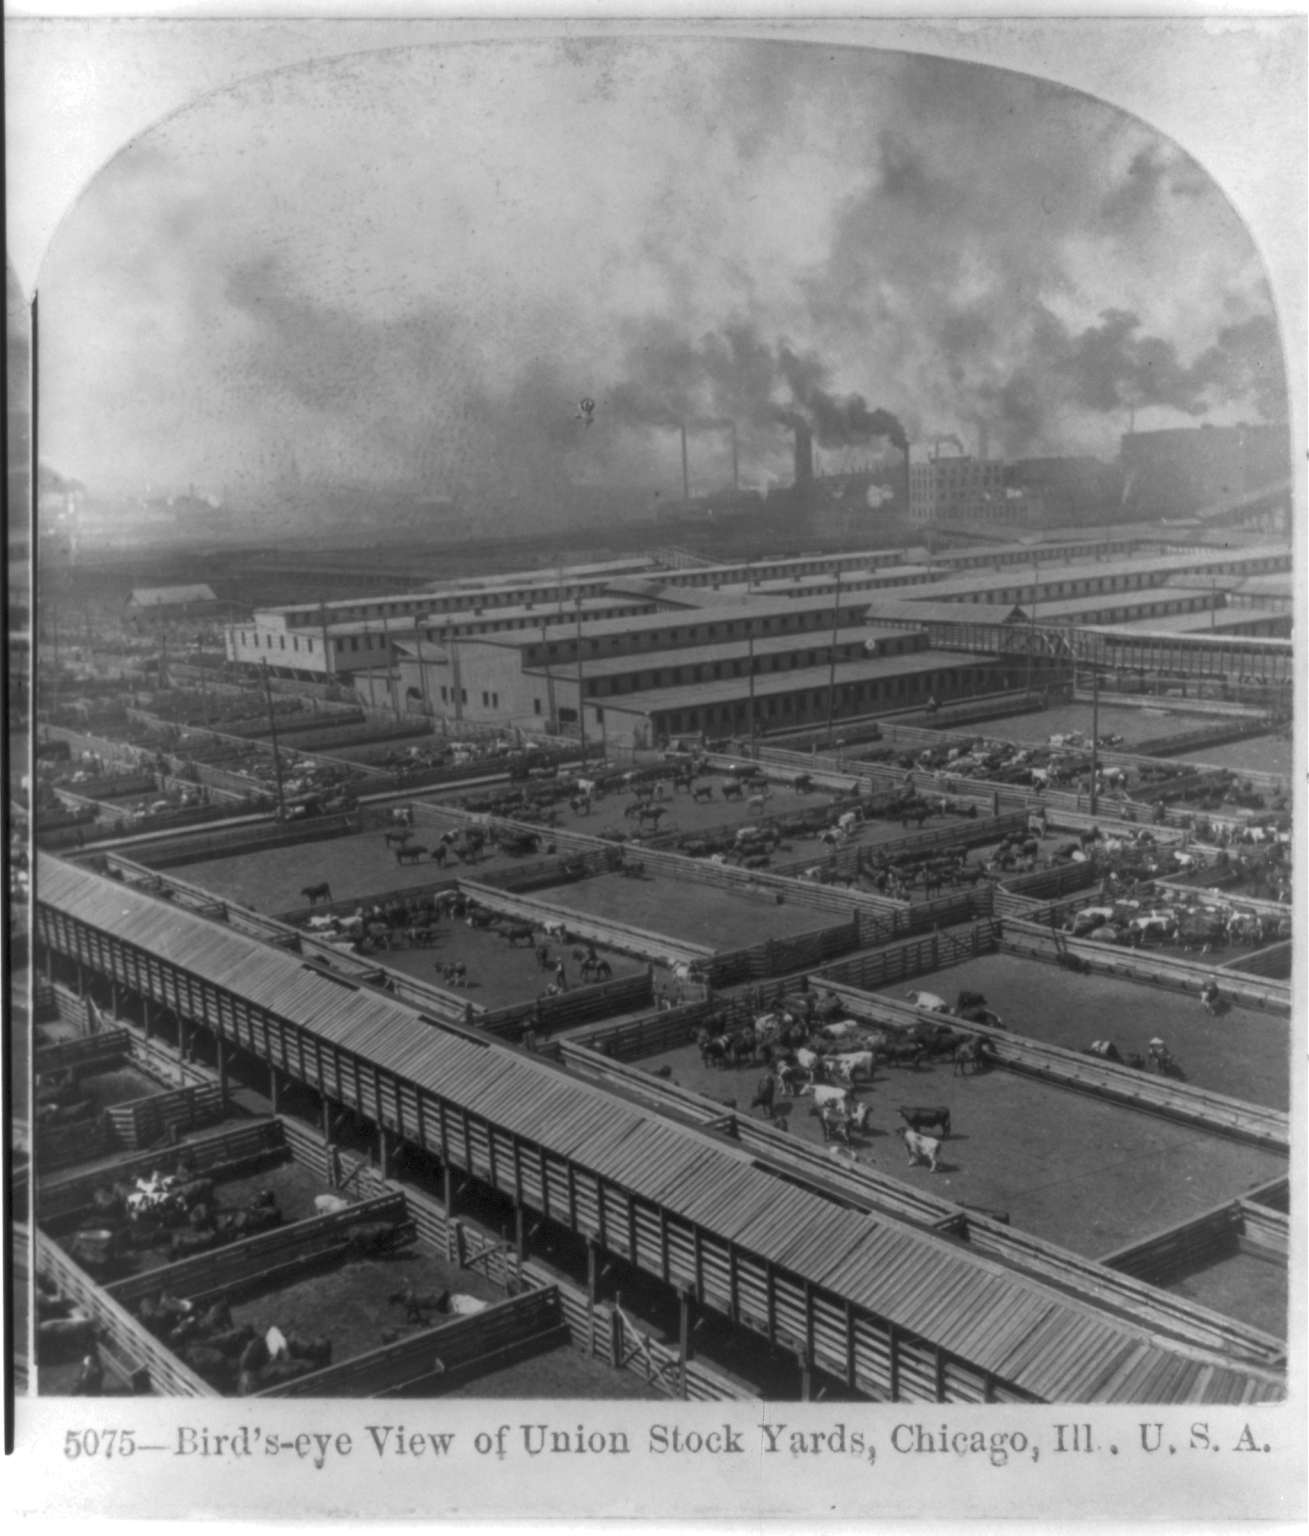 Birds eye view us east coast clipart picture free Birds-eye View Of Union Stock Yards, Chicago, Ill., U.s.a. | Free ... picture free